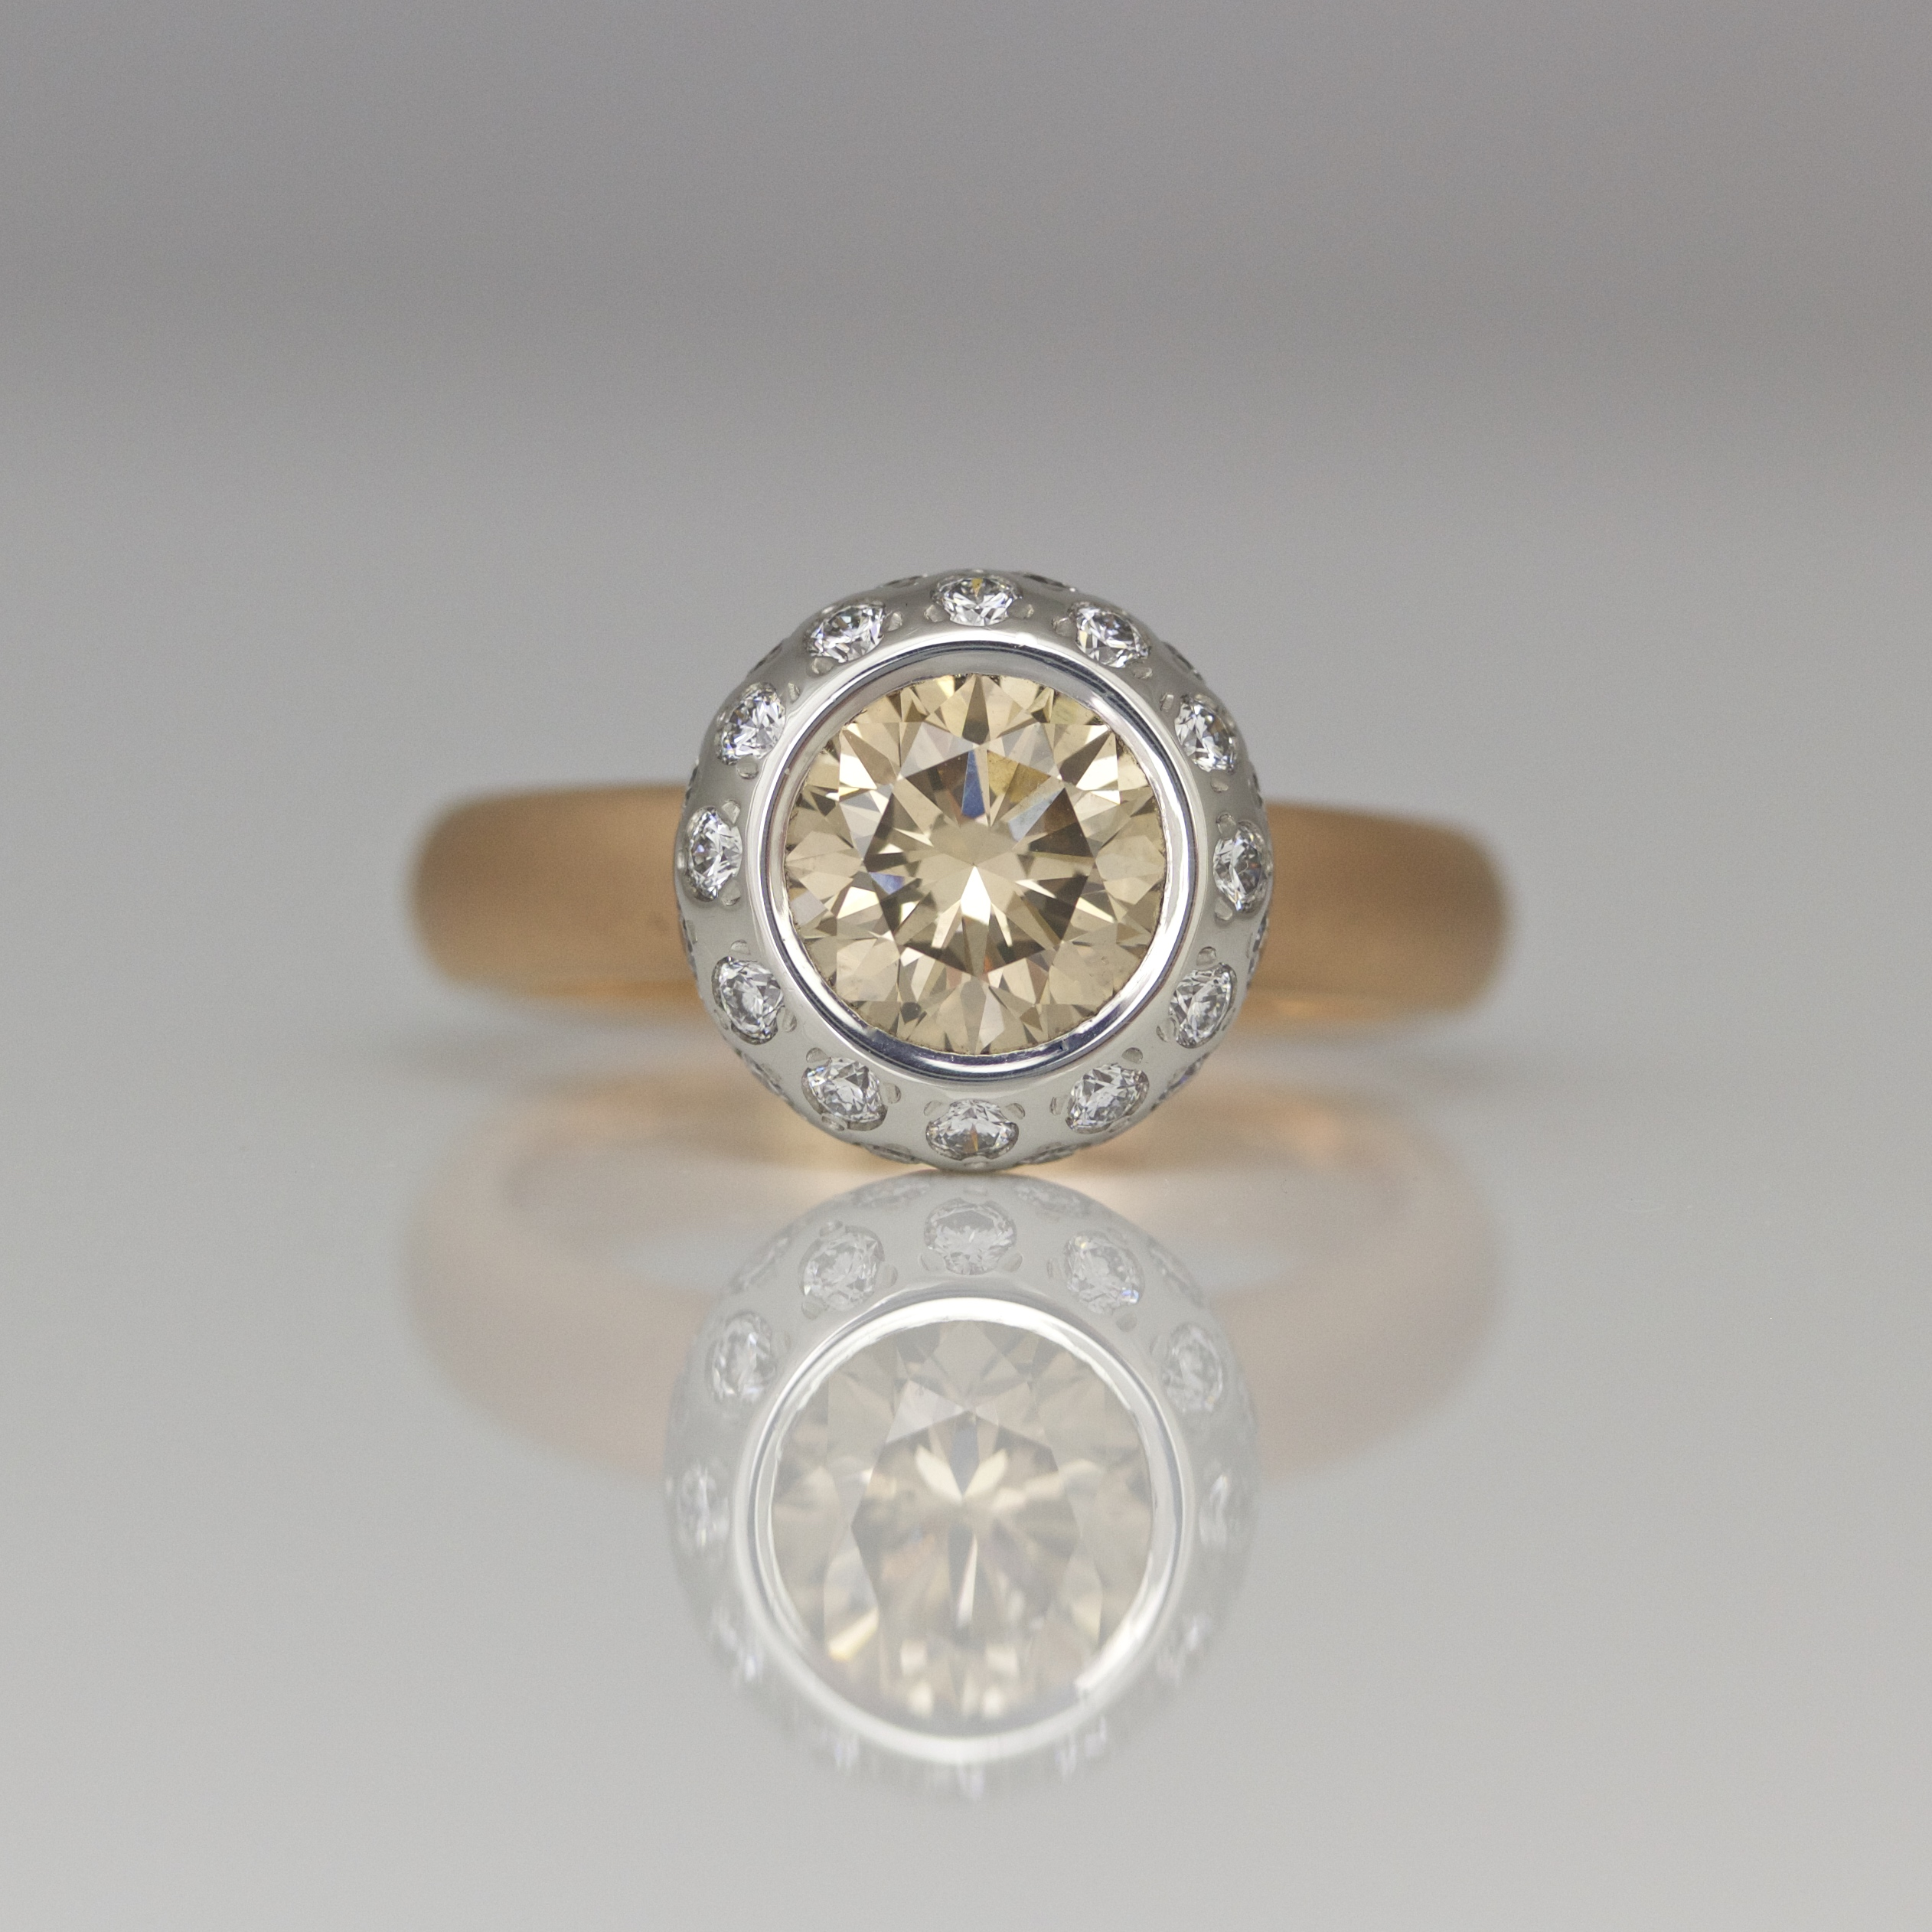 tw gold diamonds ring in champagne diamond with pink